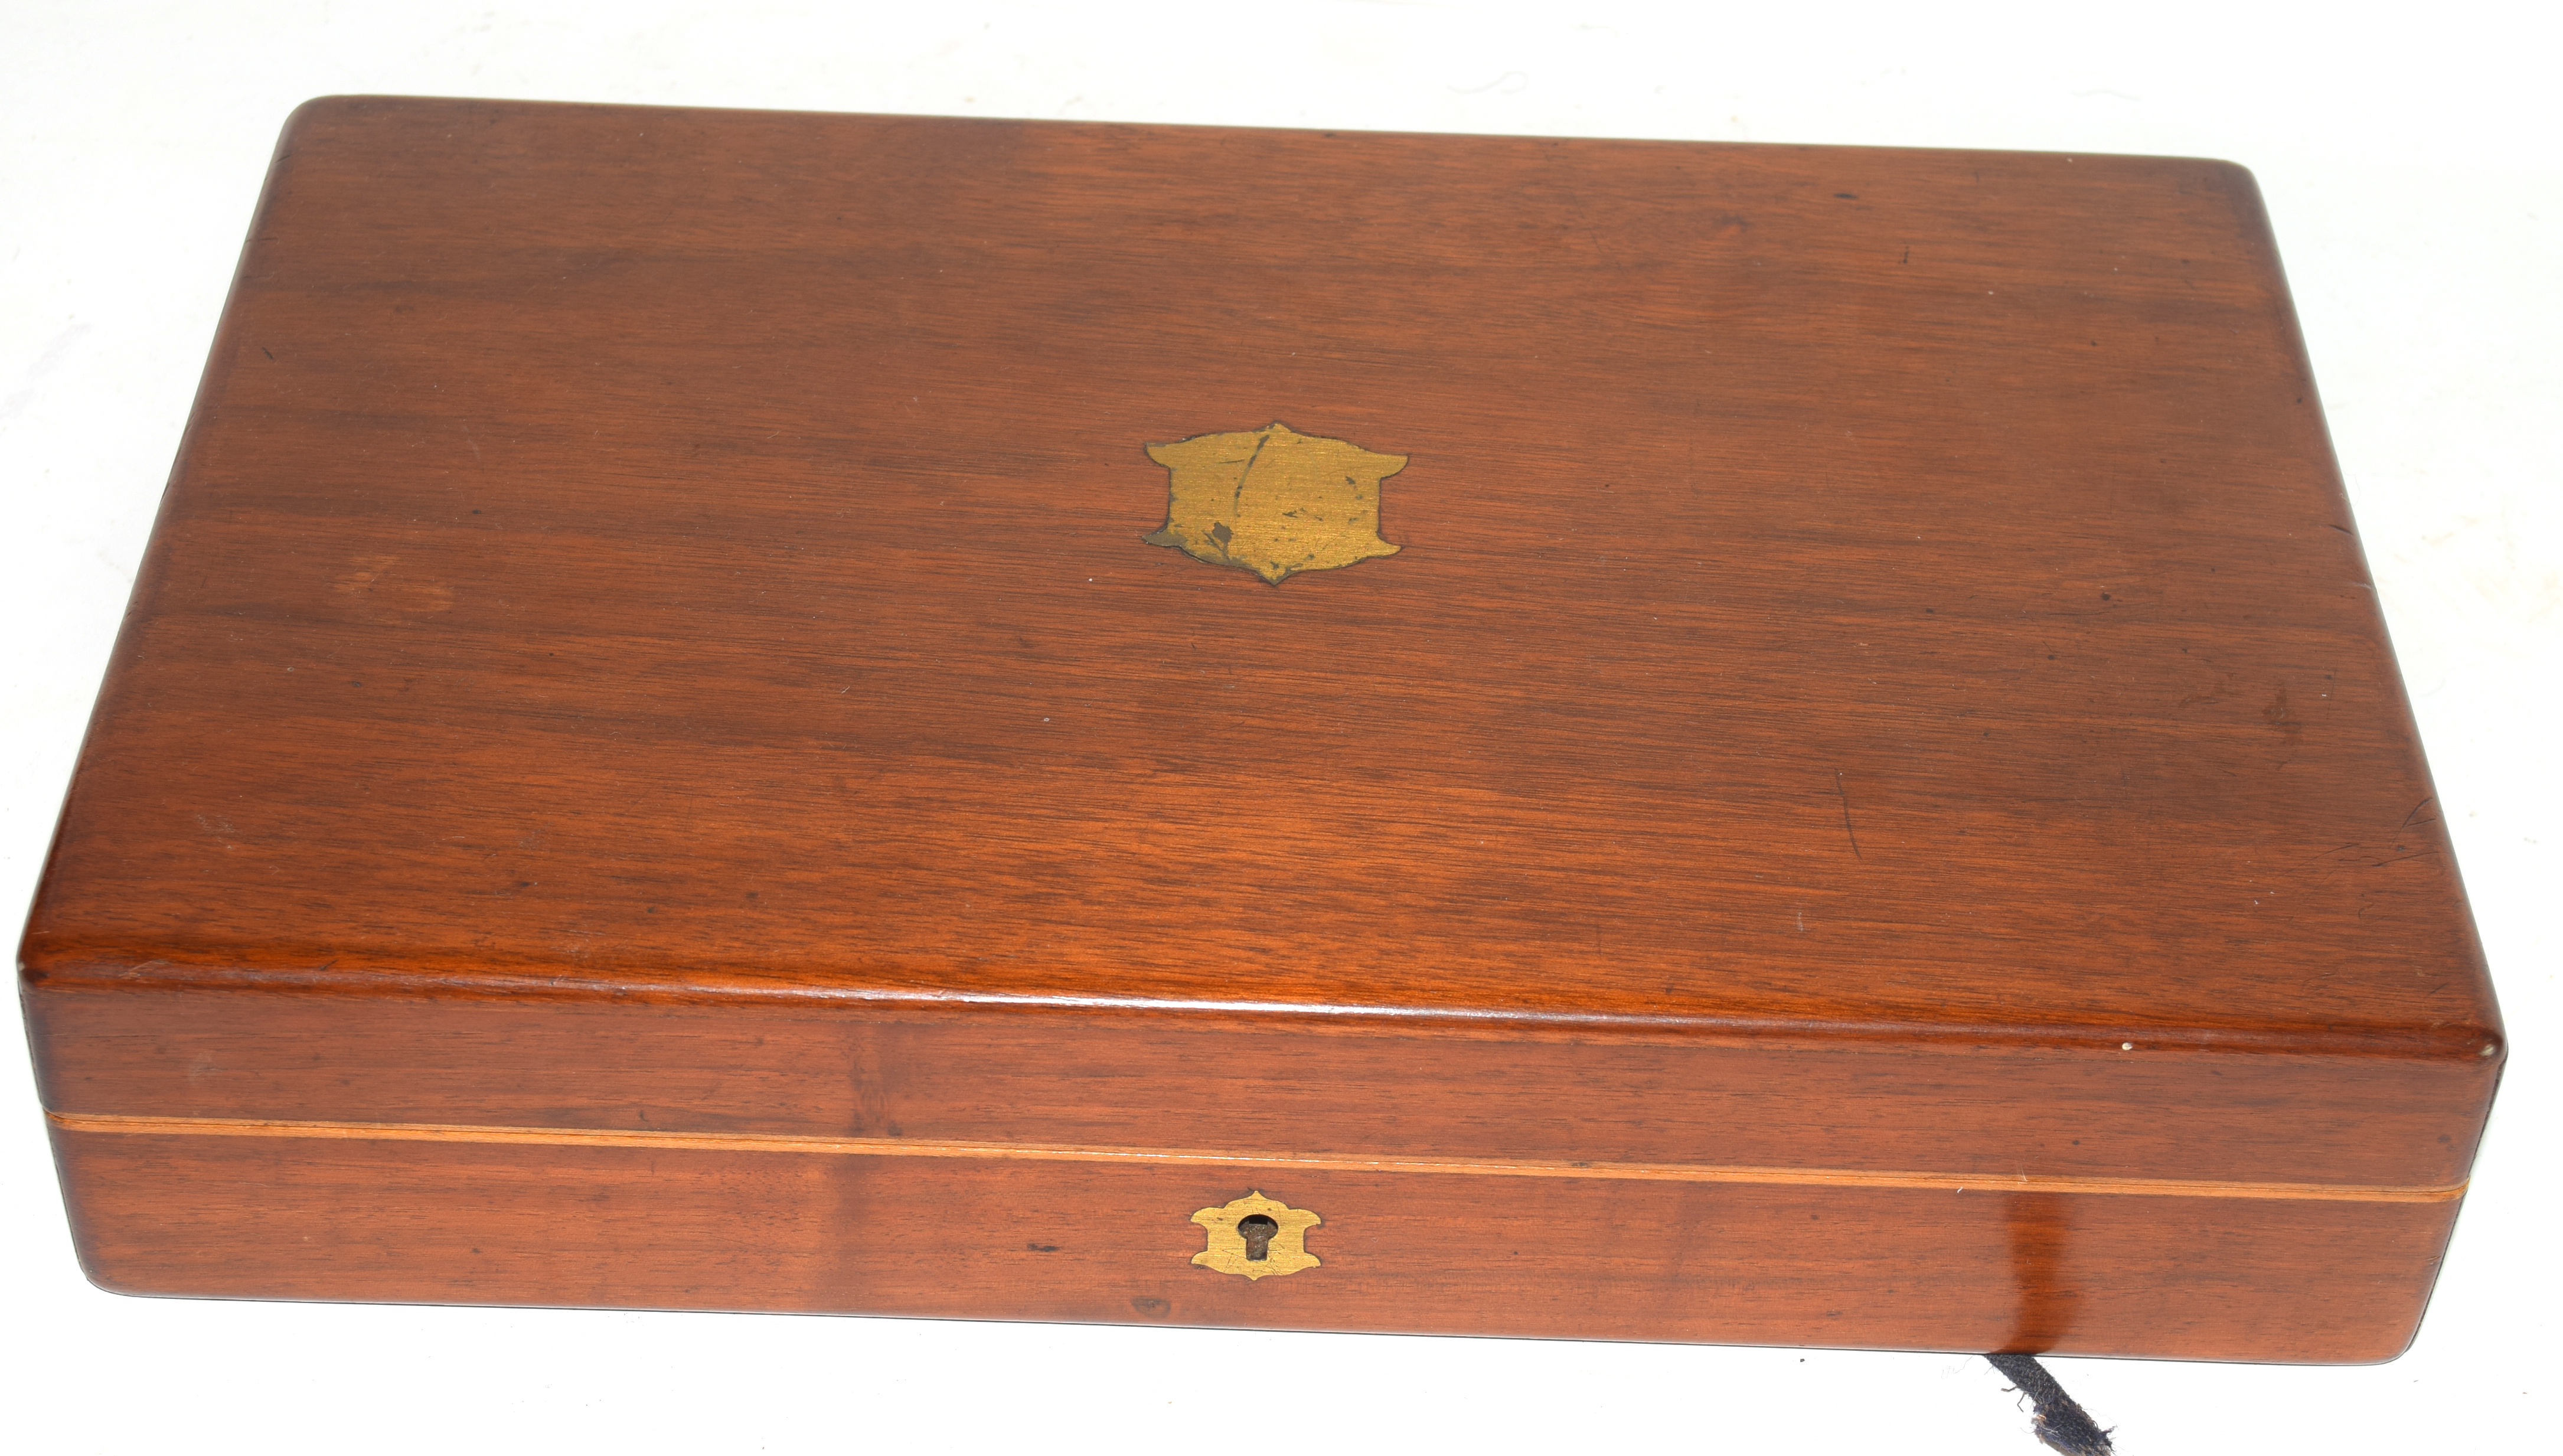 Wooden bagatelle game with silver balls, together with a 1930s child's money box - Image 5 of 5